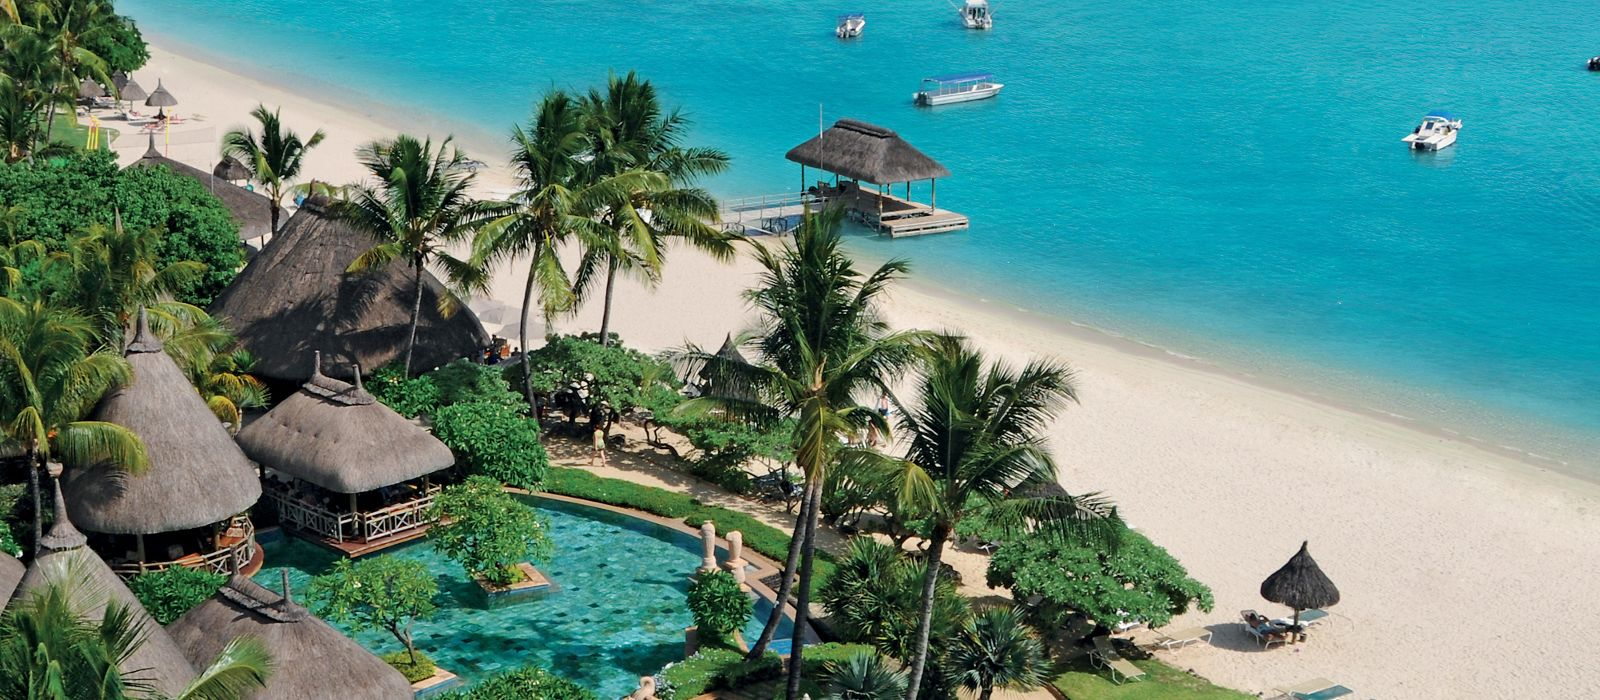 Hotel La Pirogue Resort & Spa Mauritius